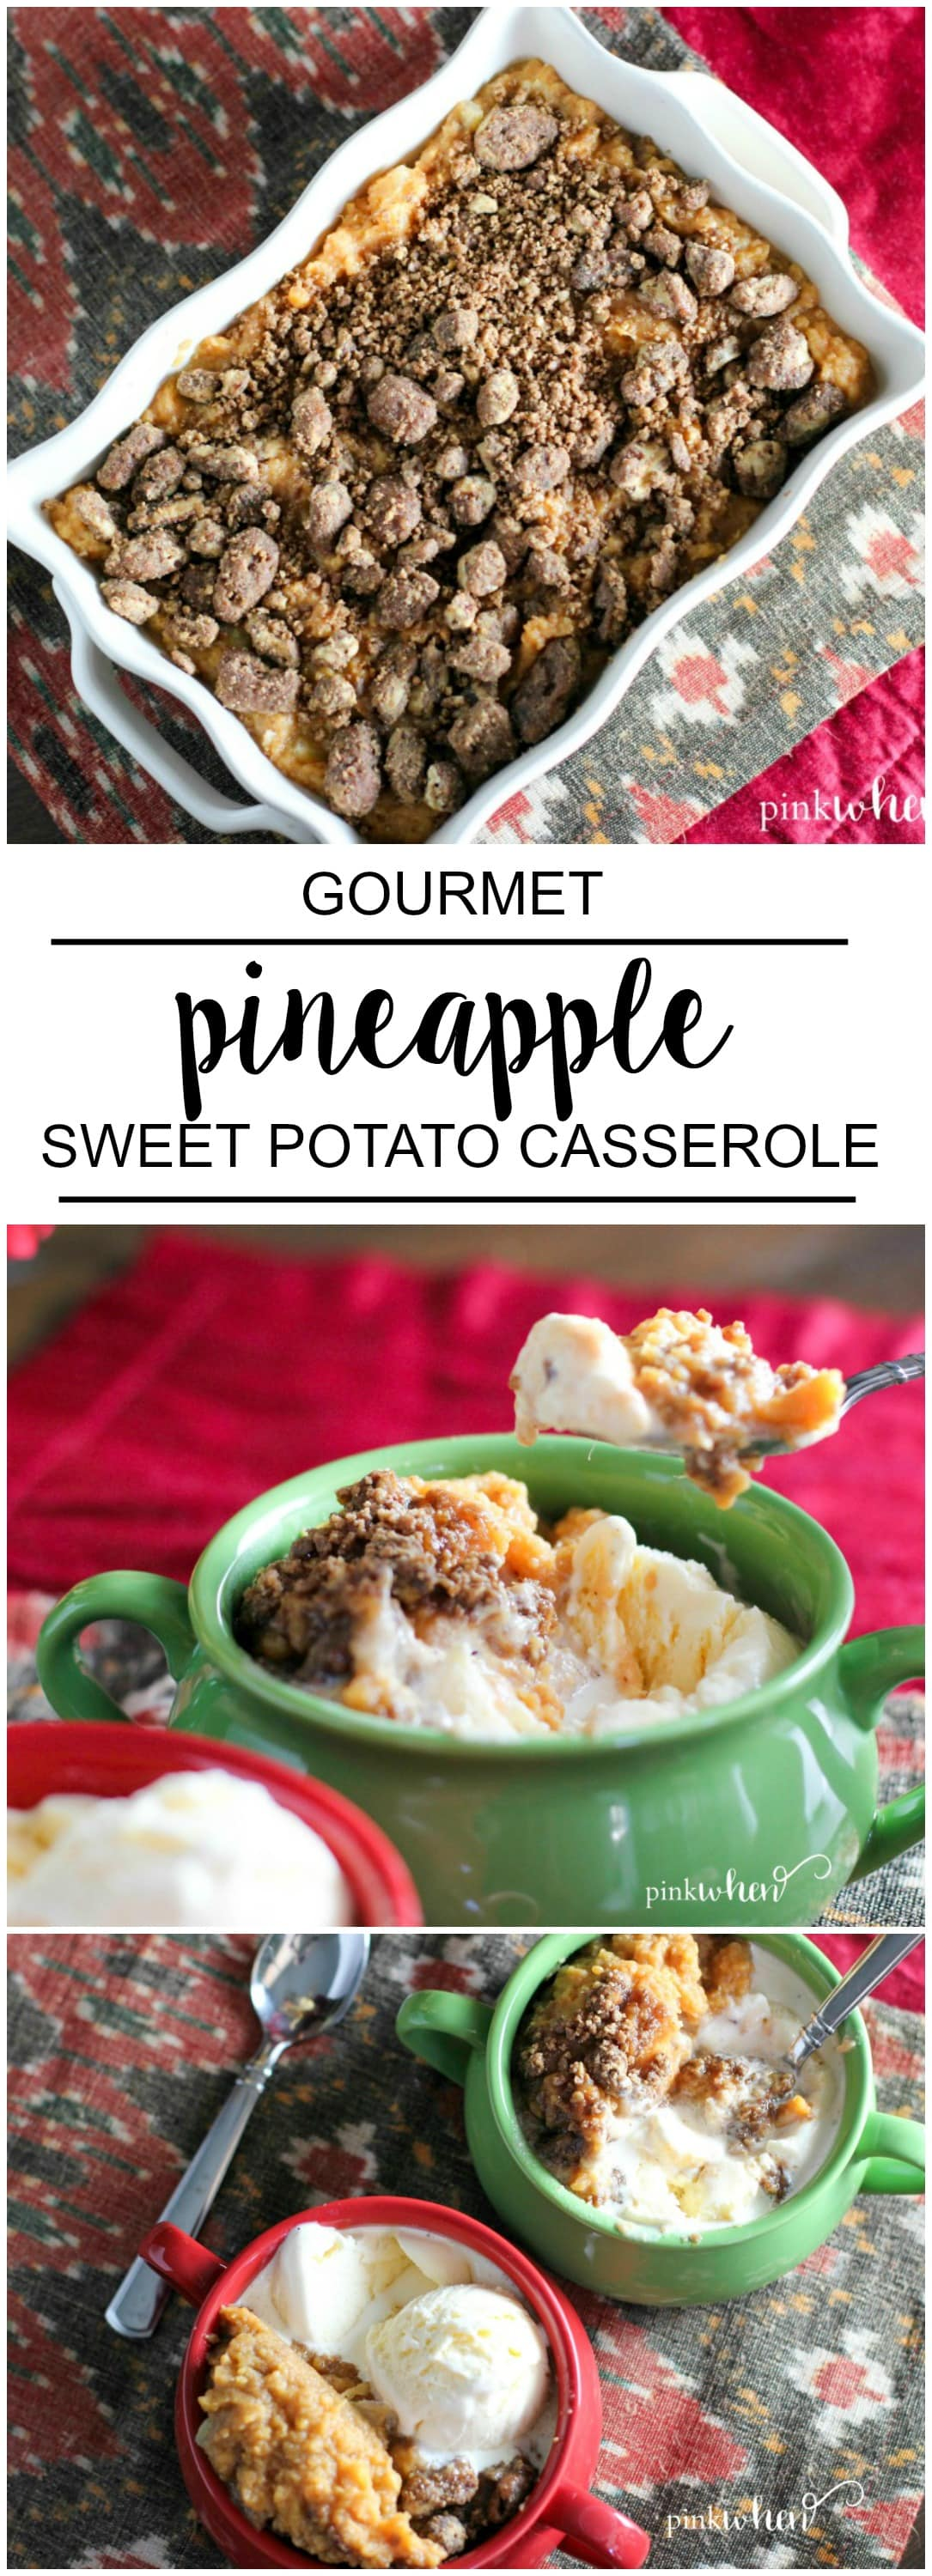 The best thing about this holiday dish is that this Pineapple Sweet Potato Casserole with Candied Pecans recipe can double as a dessert! Serve it as a side, and then serve it later with a little vanilla ice cream for a sweet treat.